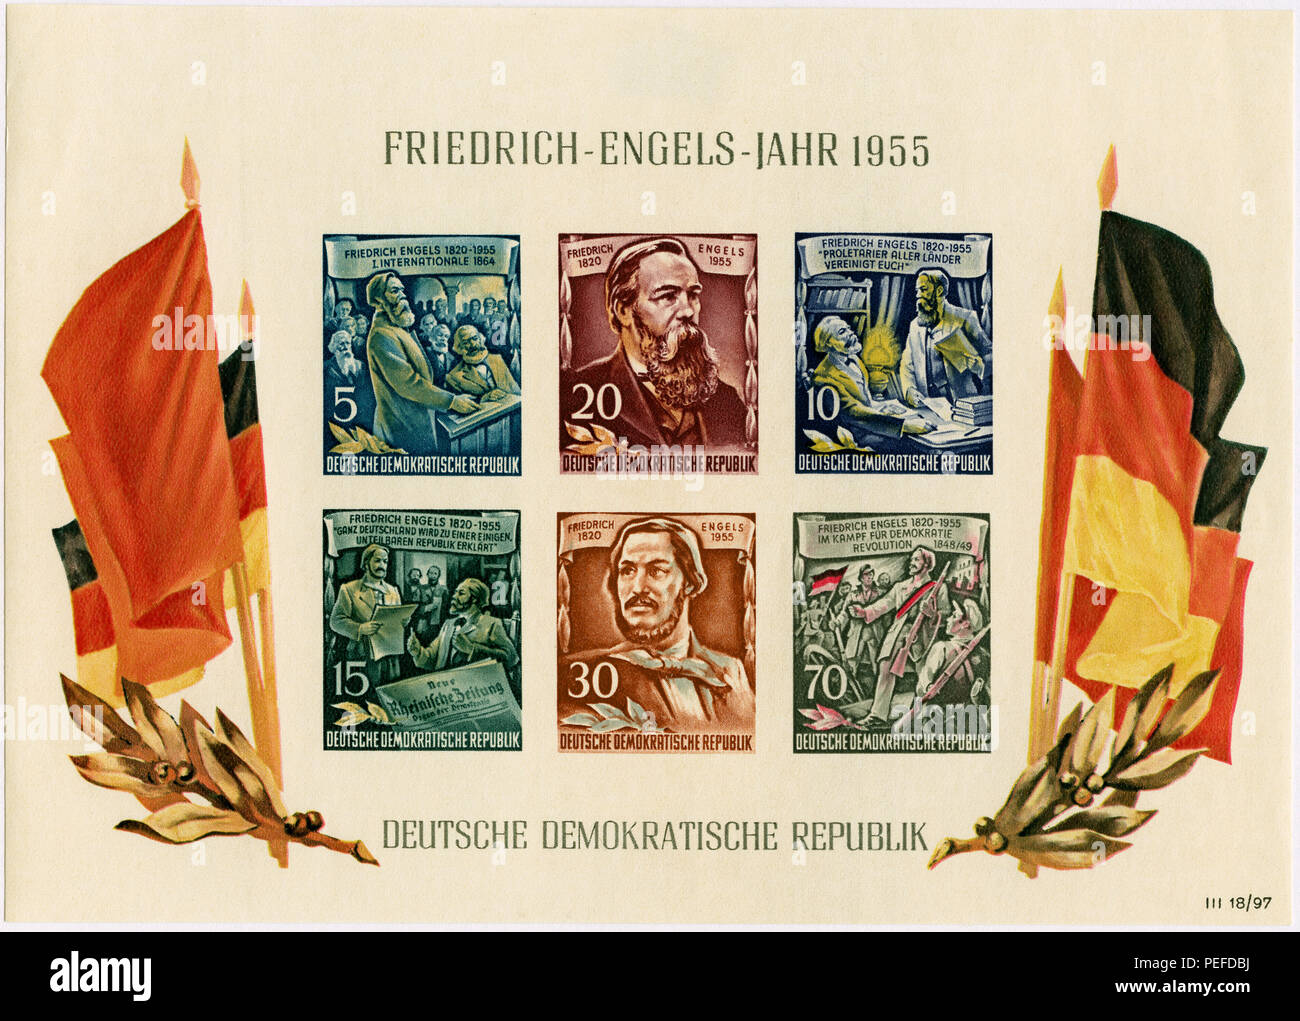 Friedrich Engels Commemorative Postage Stamp Sheet, East Germany, DDR, 1955 - Stock Image